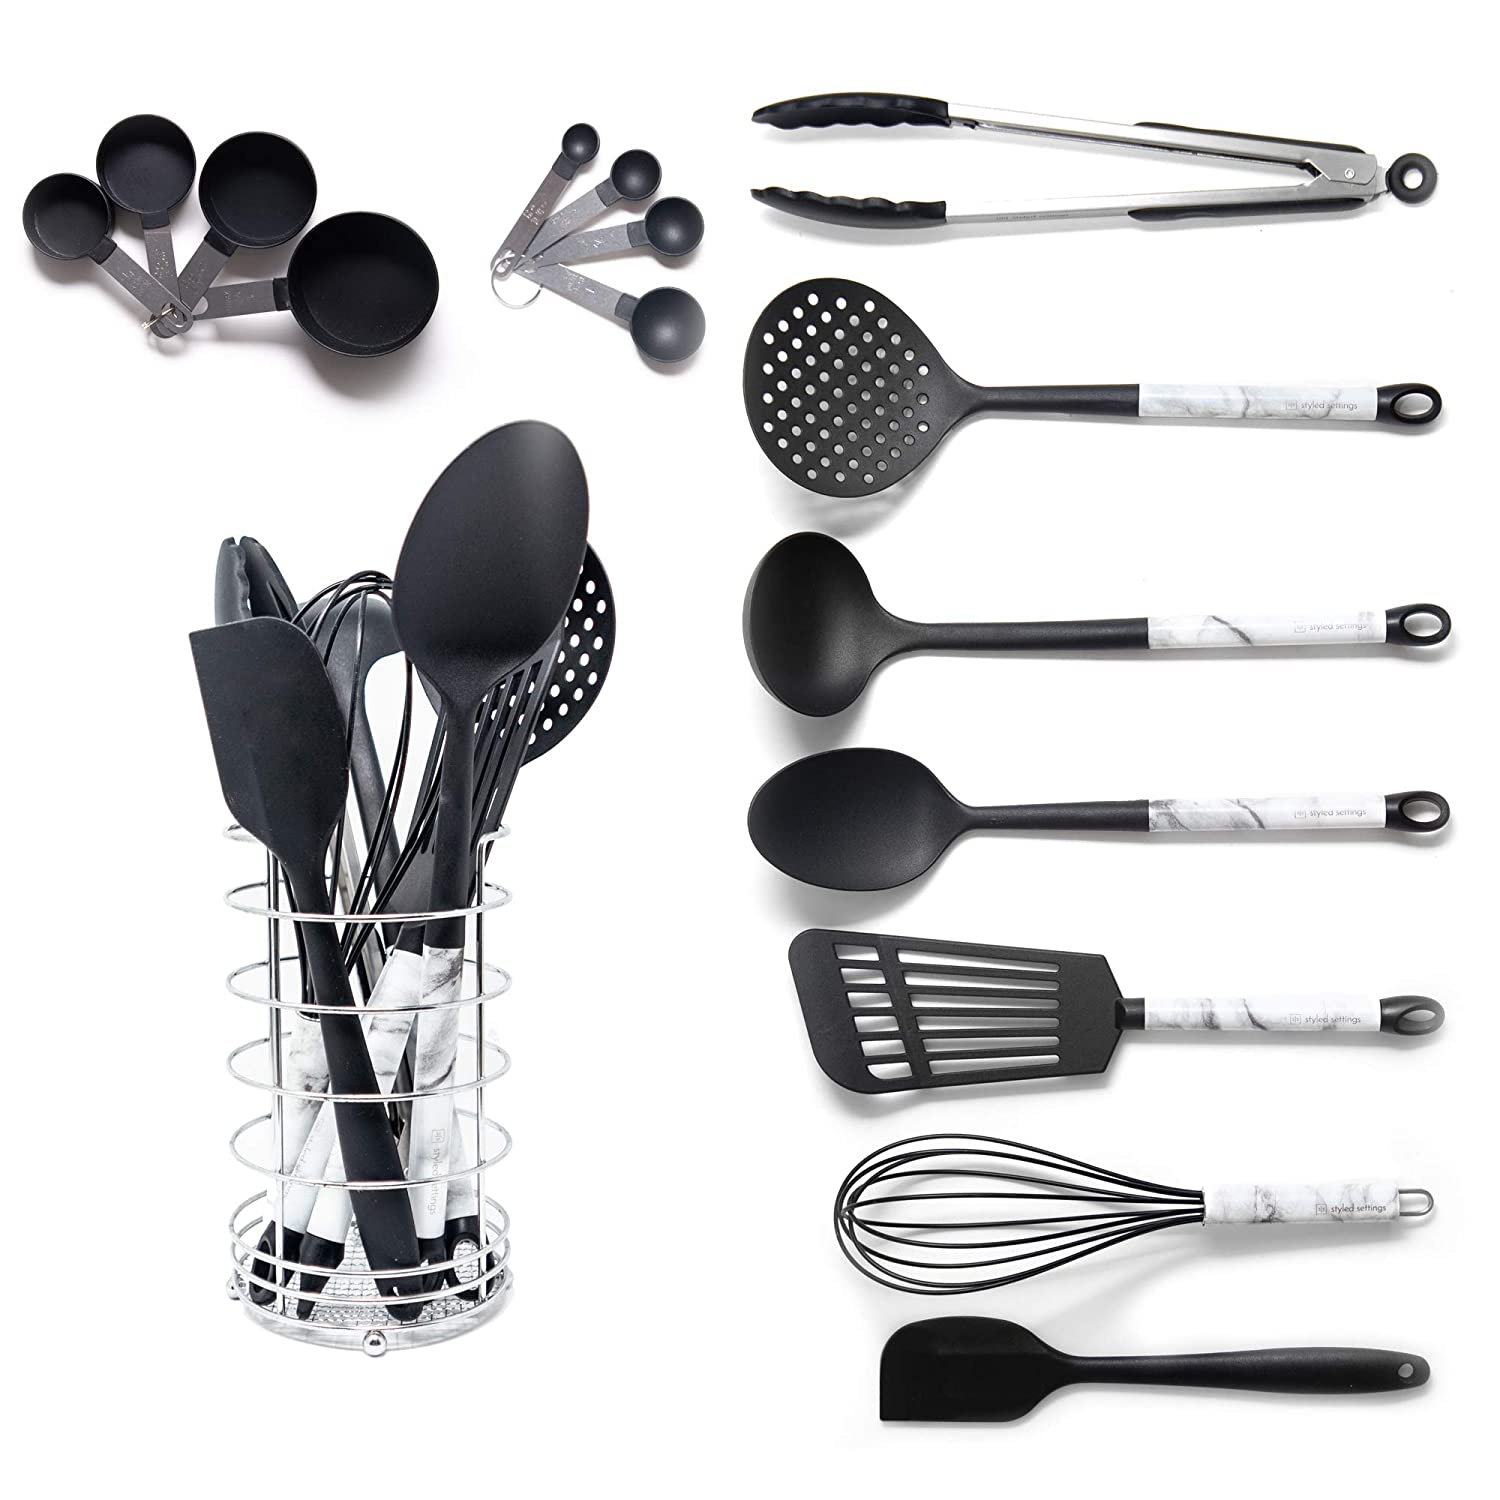 Black and Gold Measuring Cups Black and Gold Cooking Utensils with Stainless Steel Gold Utensil Holder 16-Piece Set Includes Black and Gold Measuring Spoons